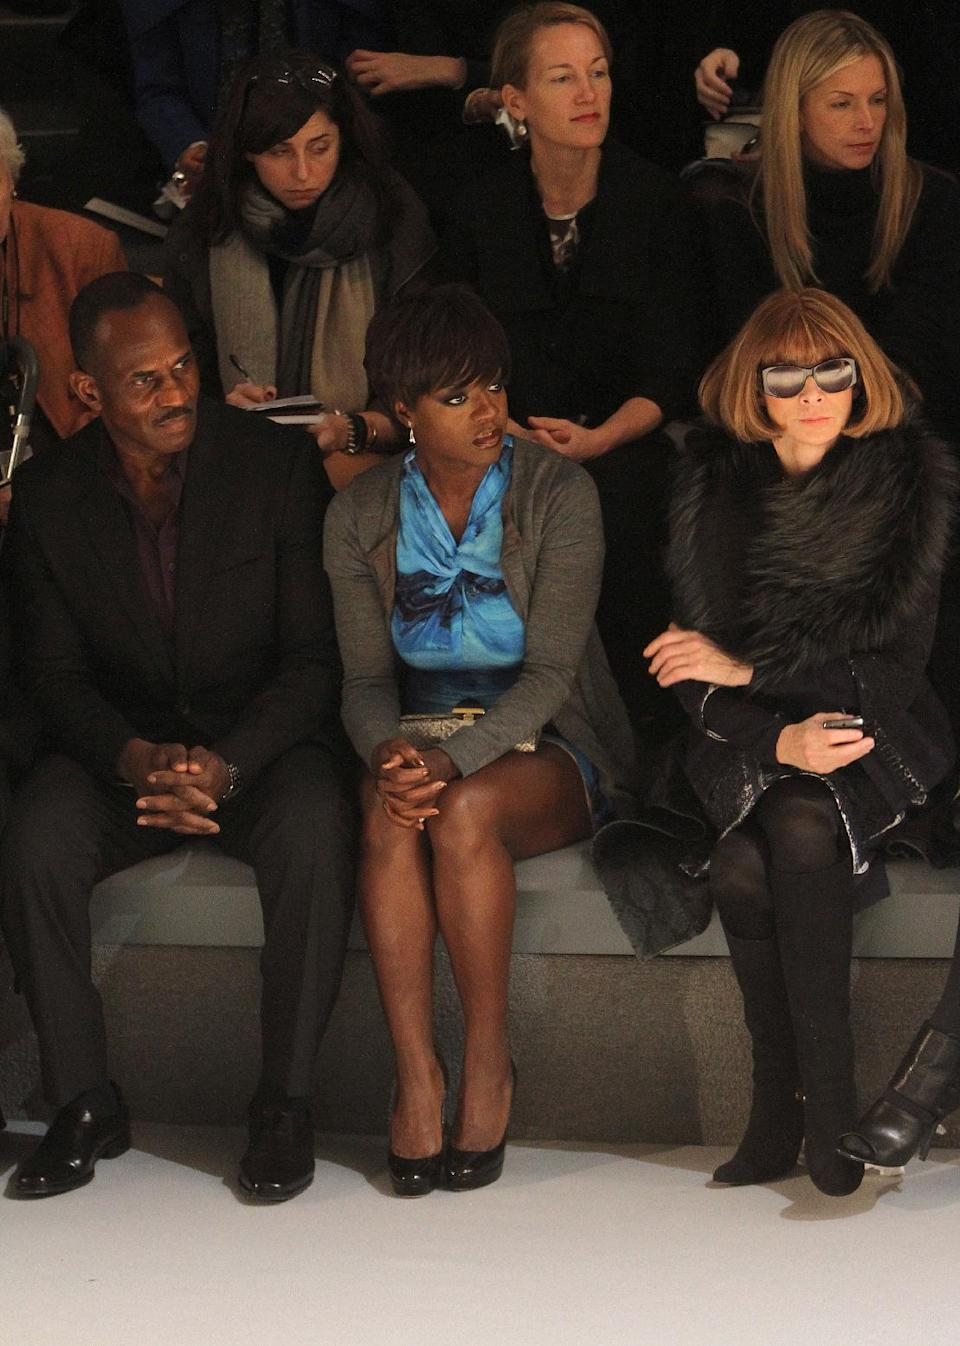 Actors Julius Tennon, seated front row from left, his wife Viola Davis, and American Vogue editor-in-chief Anna Wintour attend the Vera Wang Fall 2012 show during Fashion Week in New York, Tuesday, Feb. 14, 2012. (AP Photo/ Donald Traill)